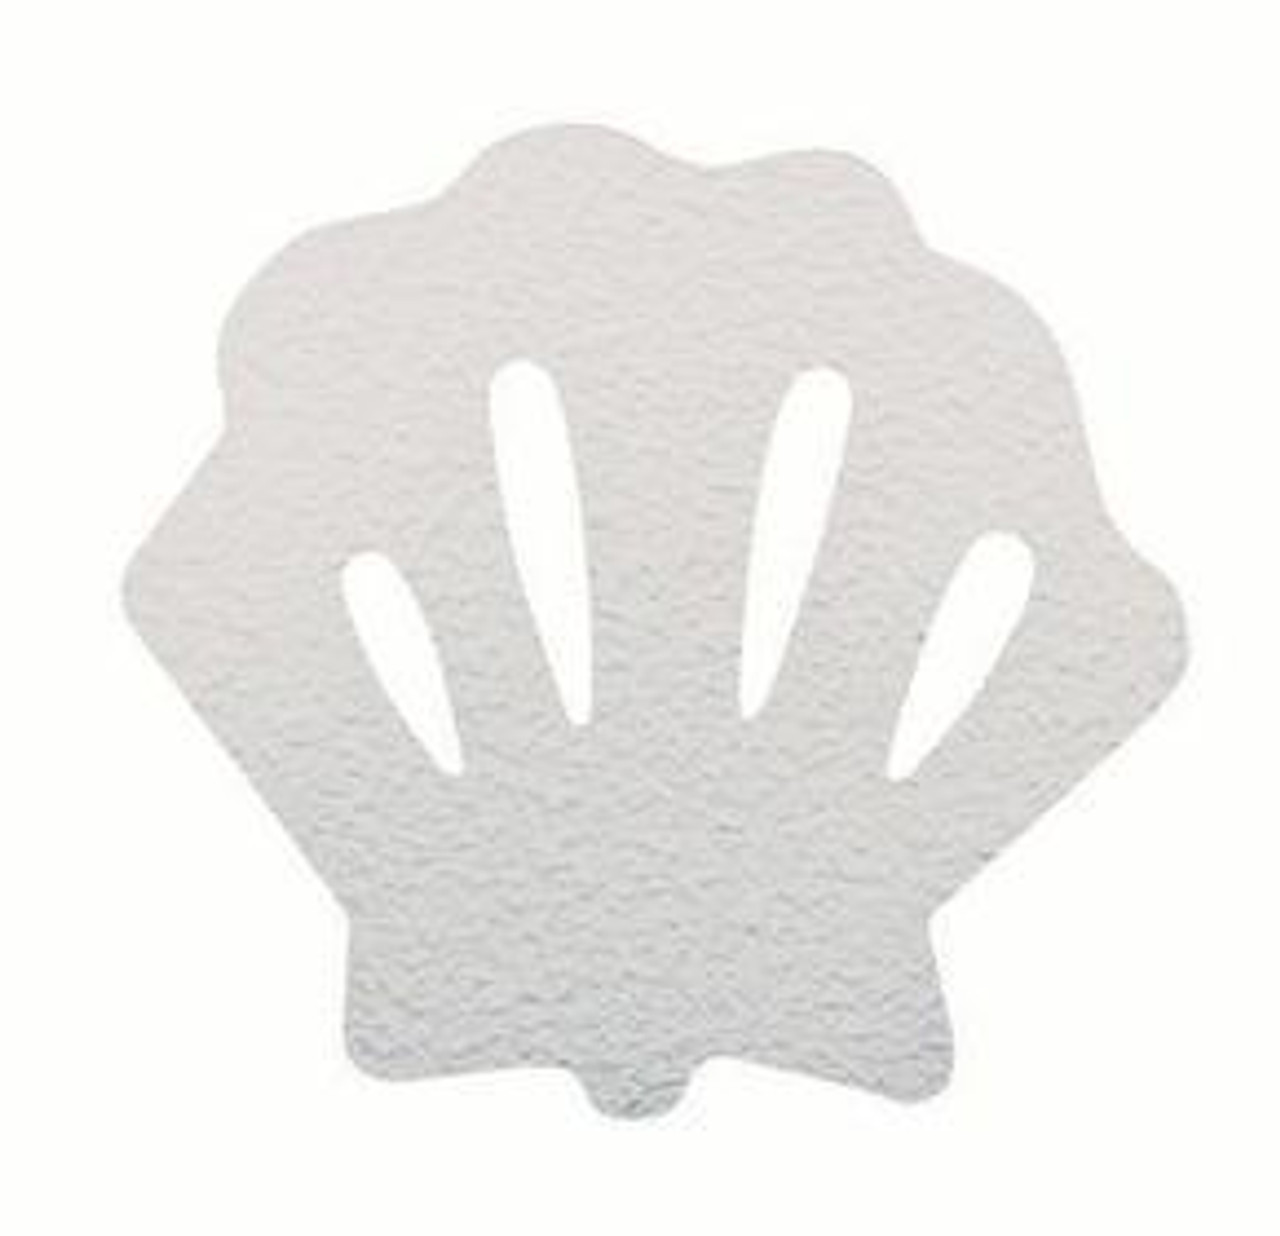 SF544 Safety First Bath/Shower No Slip Seashells Pack of 10